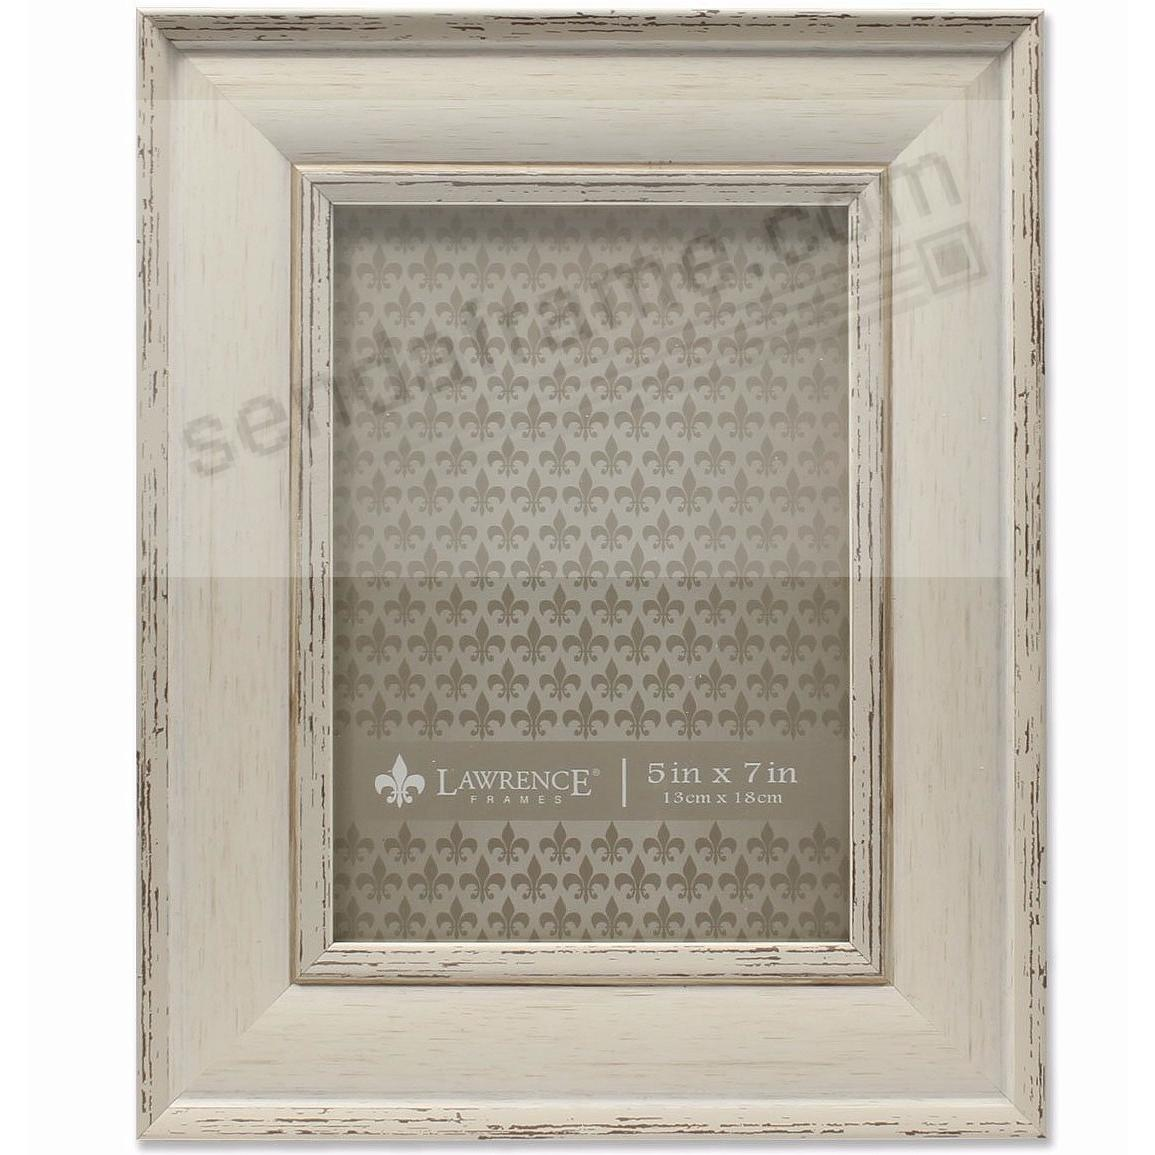 Domed Top IVORY WEATHERED frame by Lawrence®